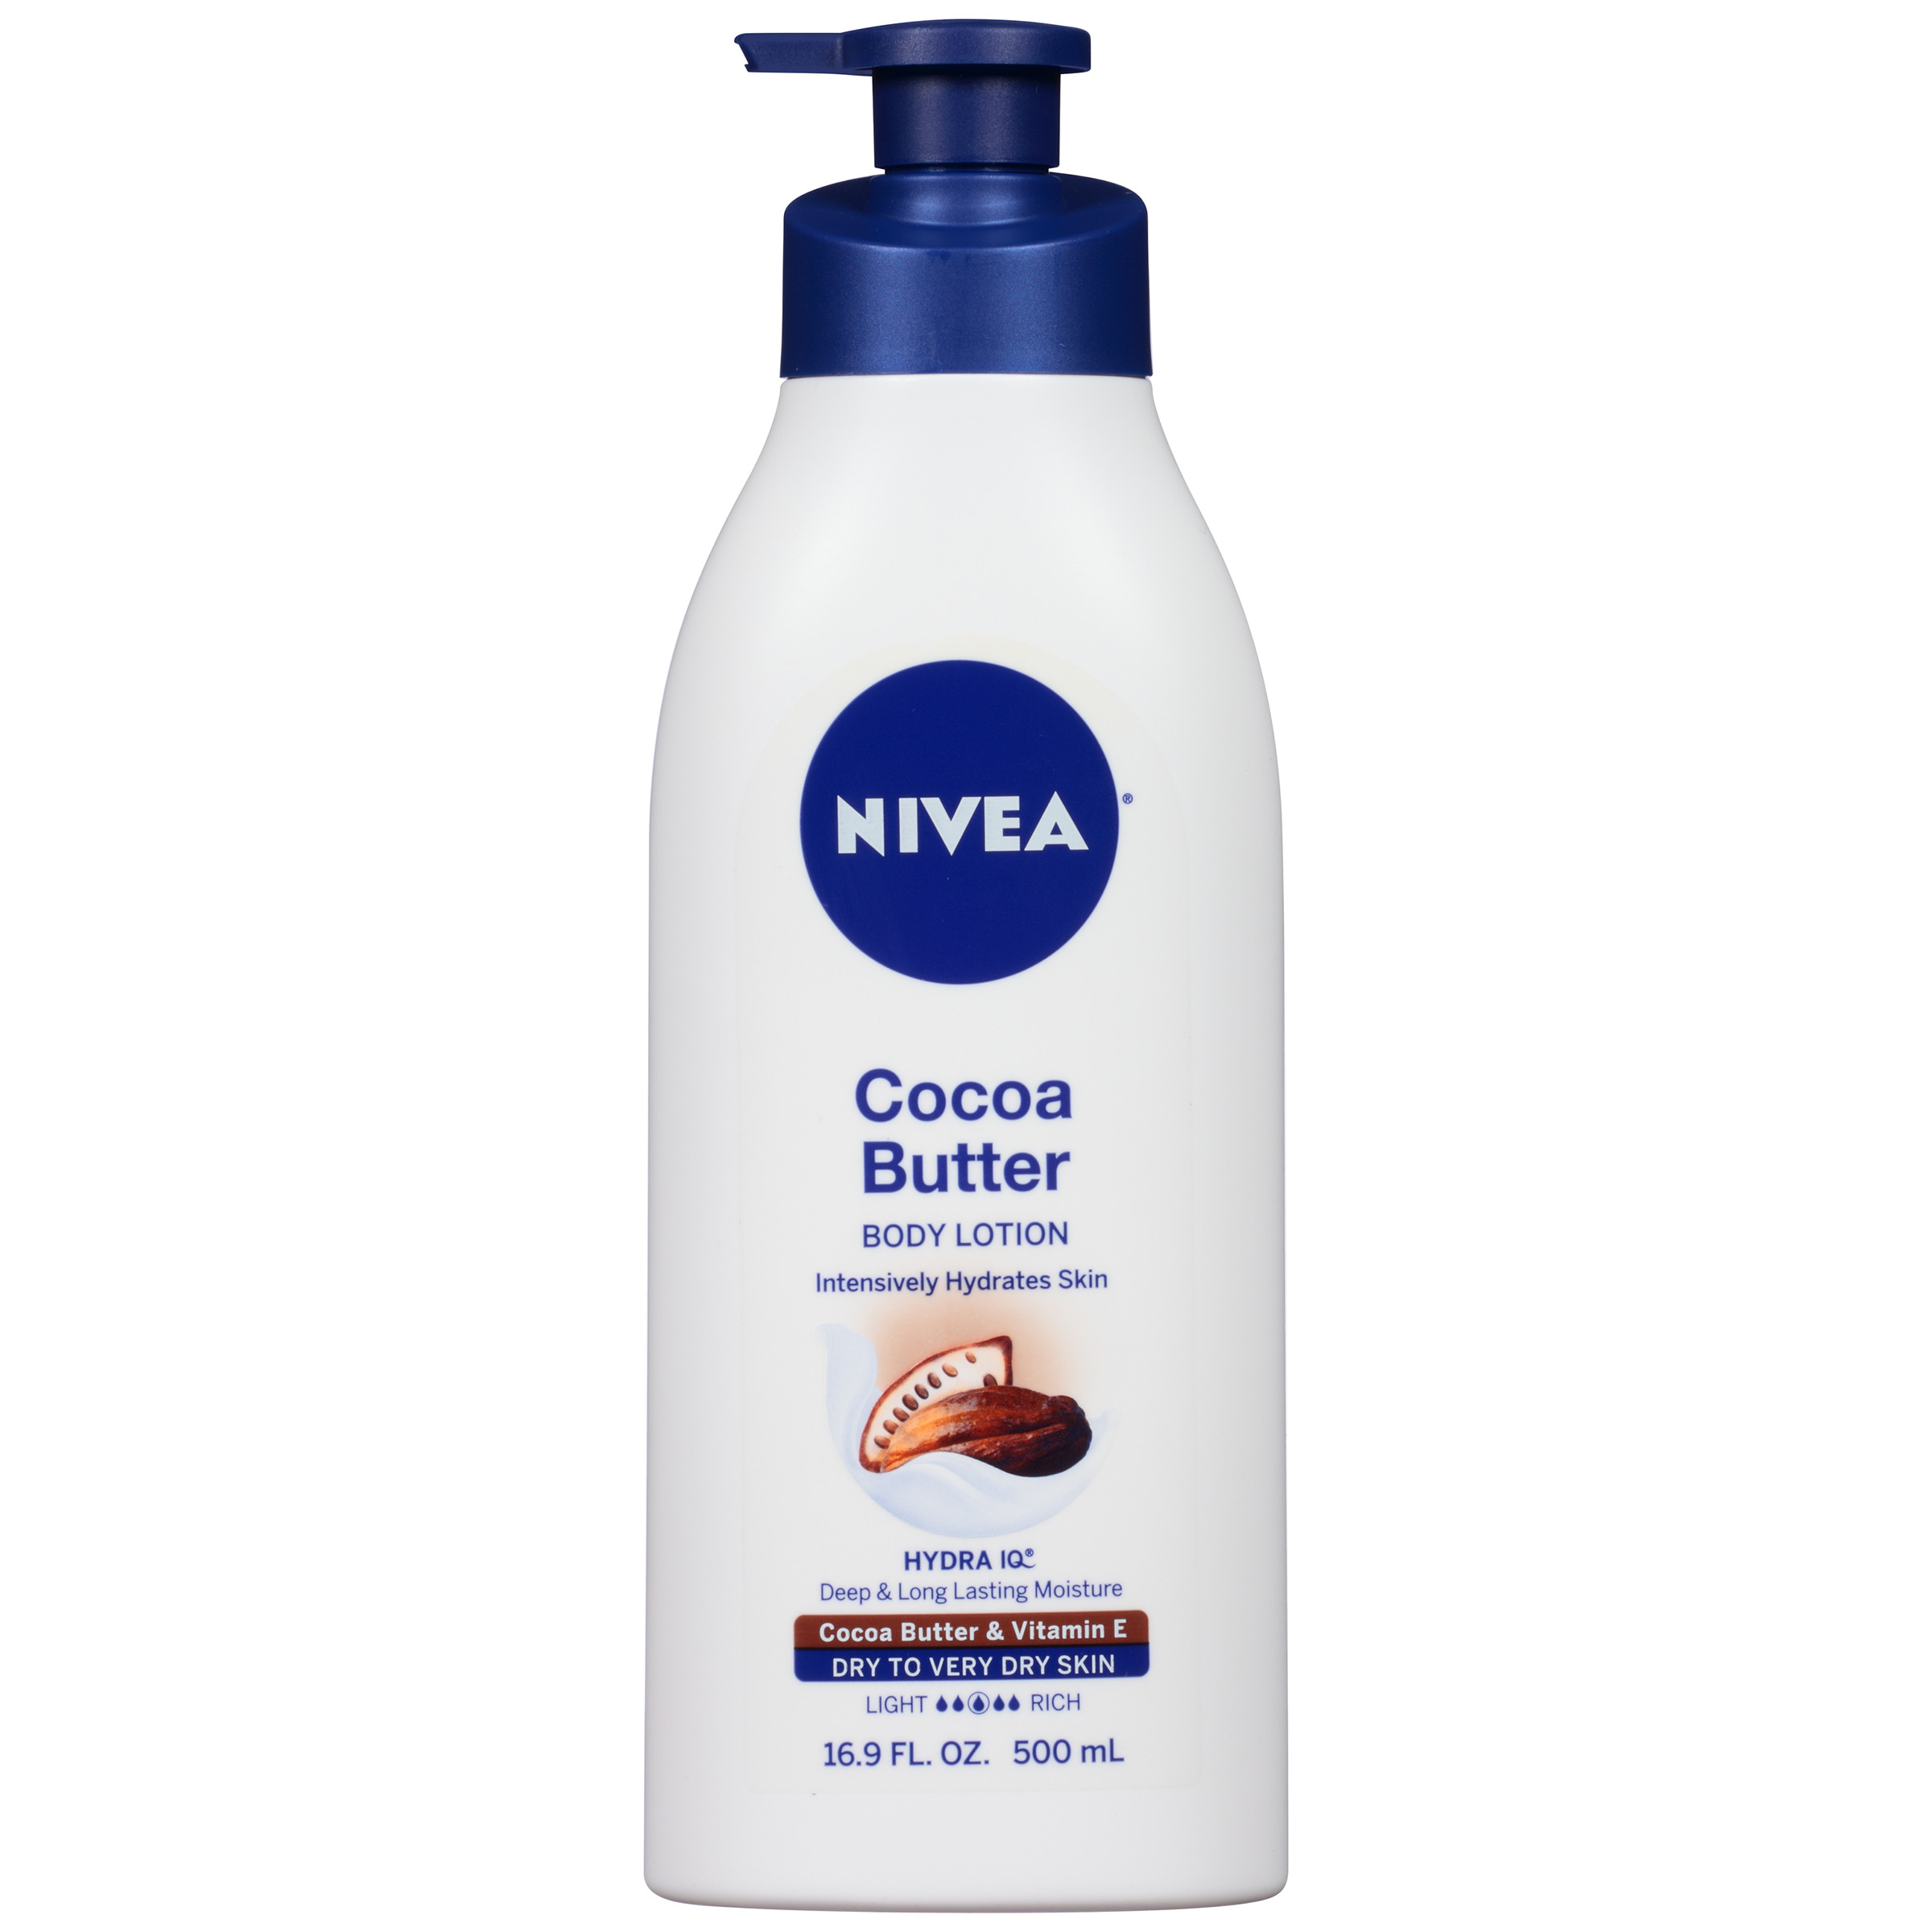 NIVEA Cocoa Butter Body Lotion 16.9 fl. oz. - Walmart.com